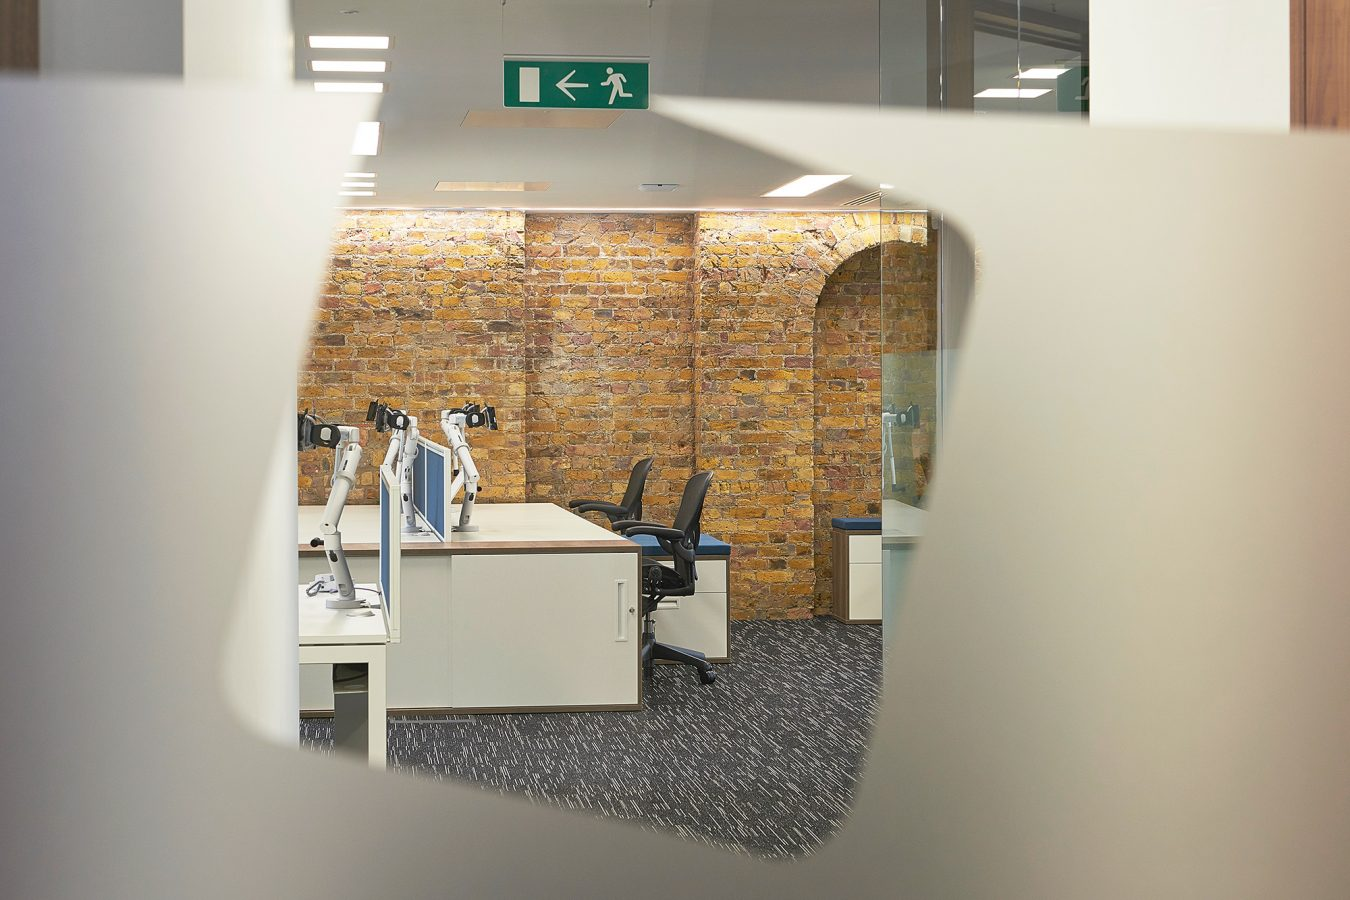 Workplace interior design and fit out, exposed brickwork, white office desks, LED lights, modern look, near London.